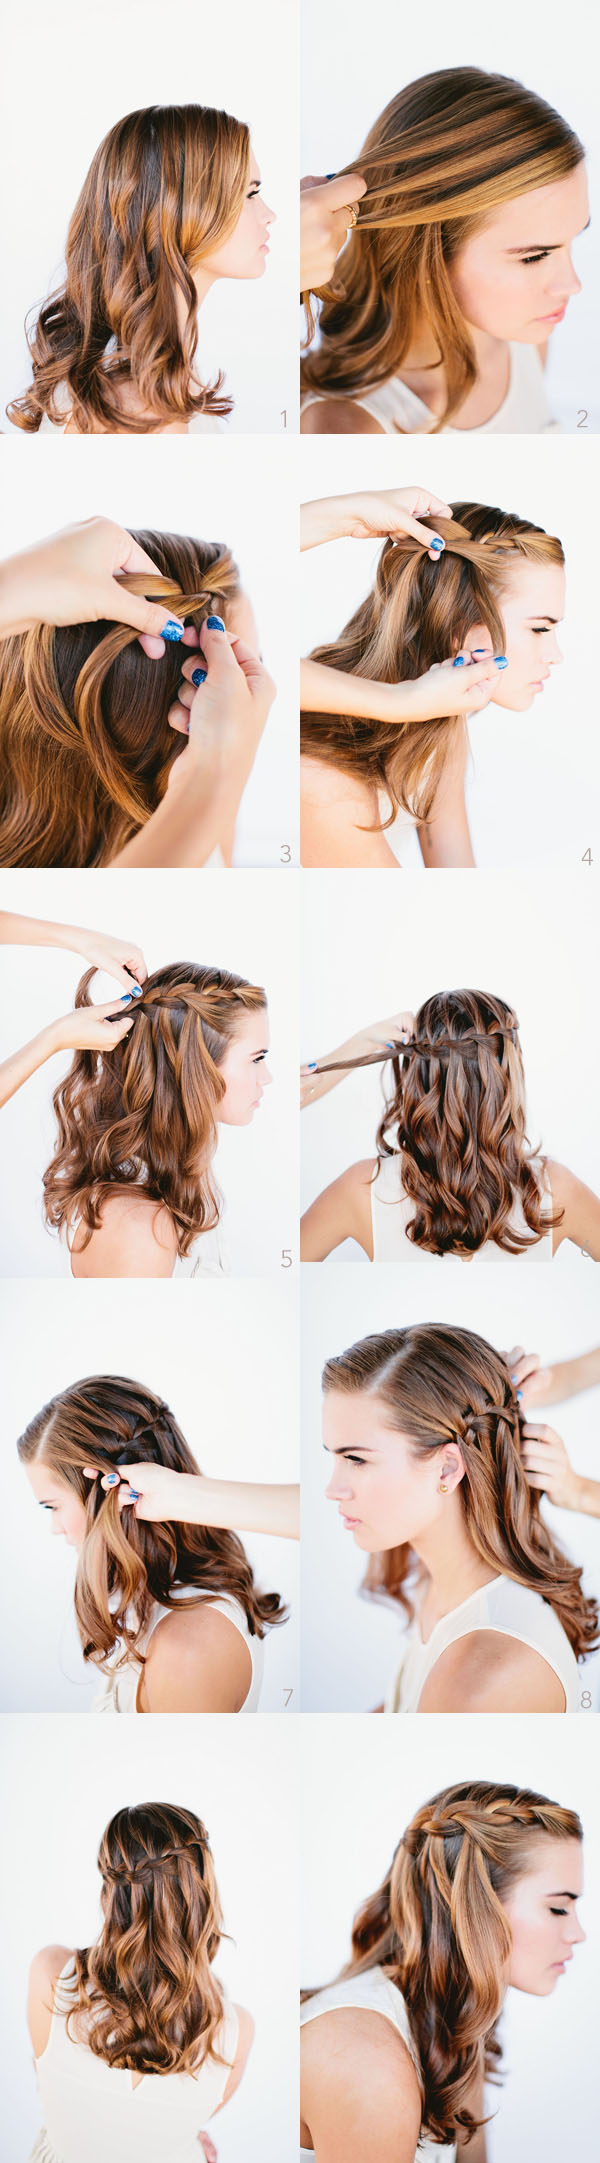 Hair Braids to do on Yourself Waterfall Braid For Long Hair